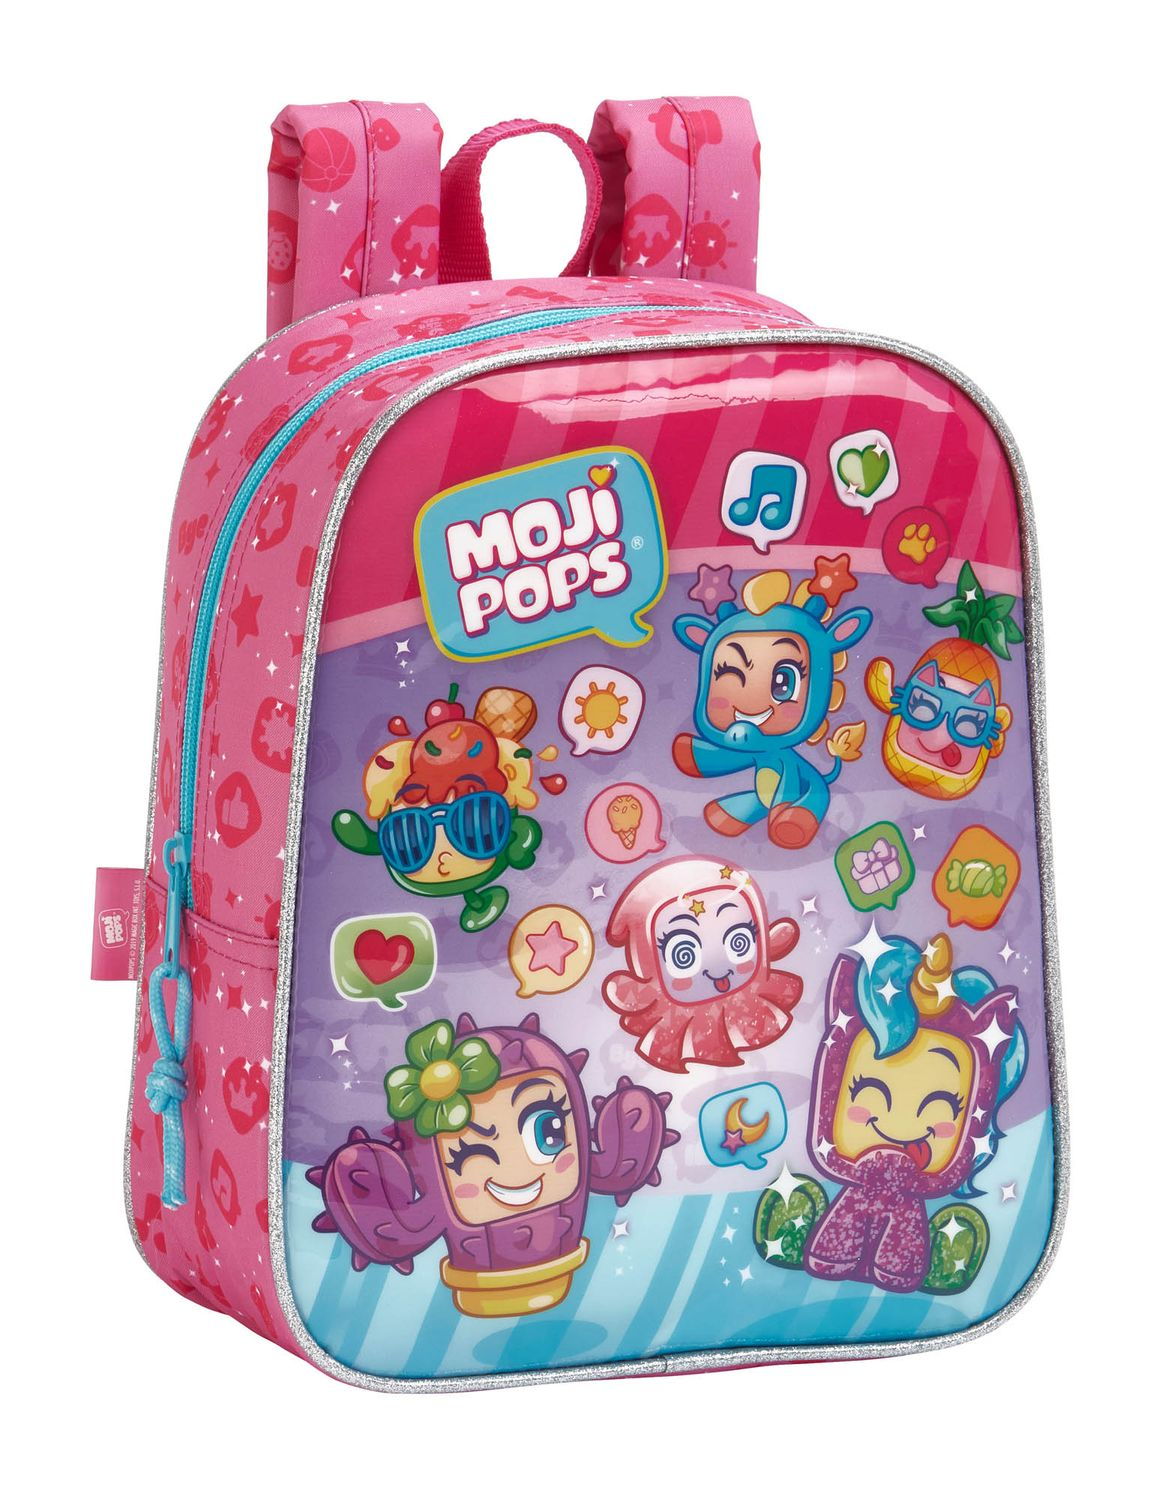 MOJIPOPS Junior Backpack 27cm – image 1